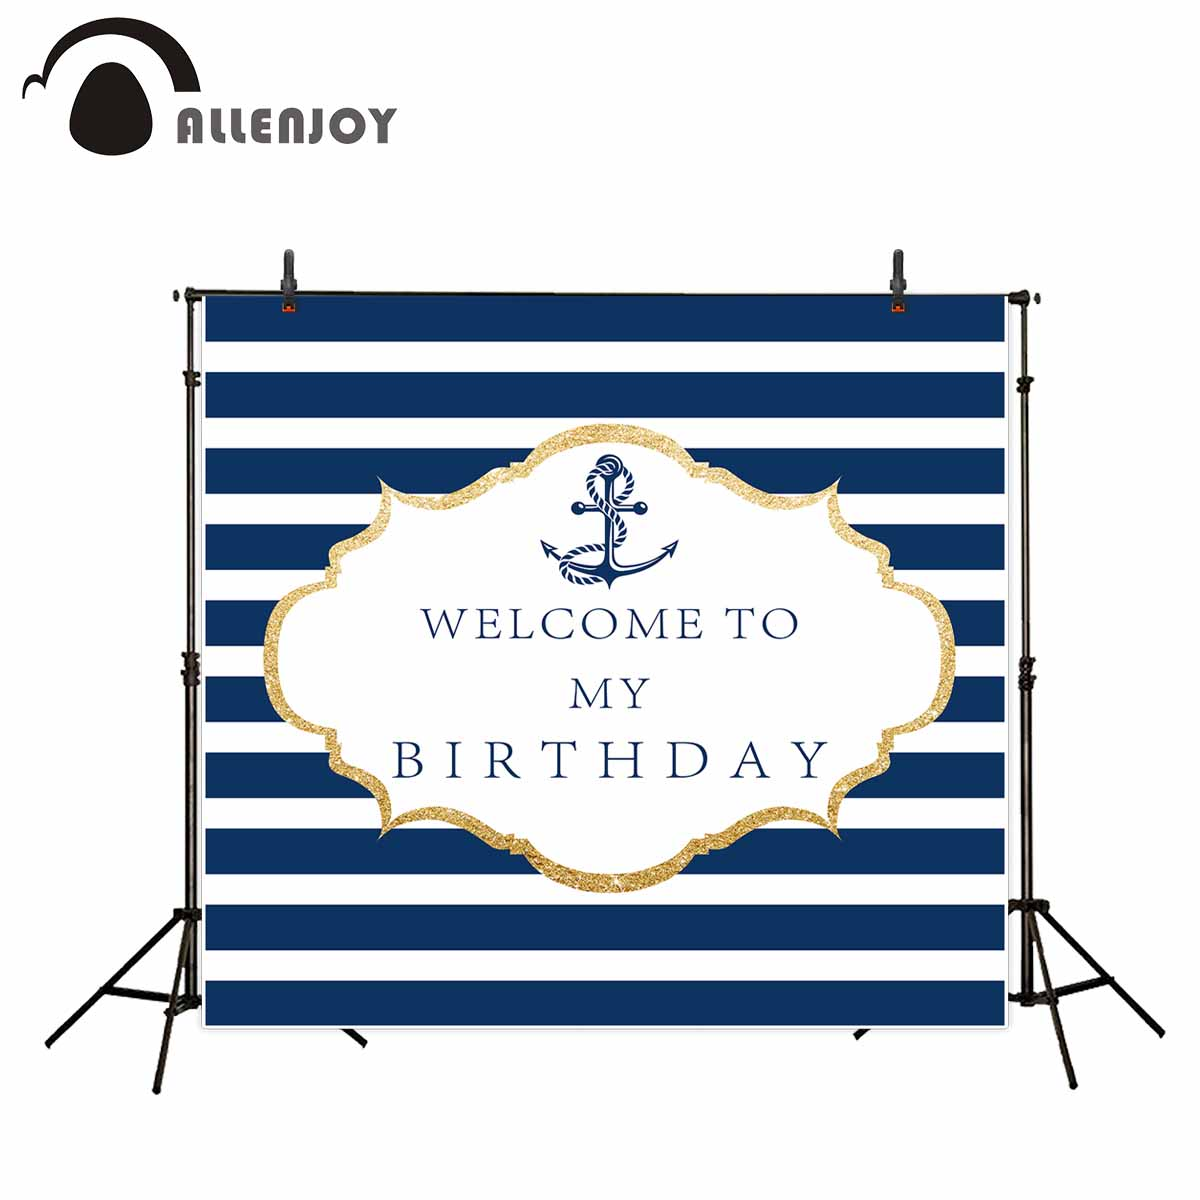 Allenjoy background for photo naval style boy birthday party blue and white stripes new photo studio backdrop fantasy props allenjoy background for photo studio full moon spider black cat pumpkin halloween backdrop newborn original design fantasy props